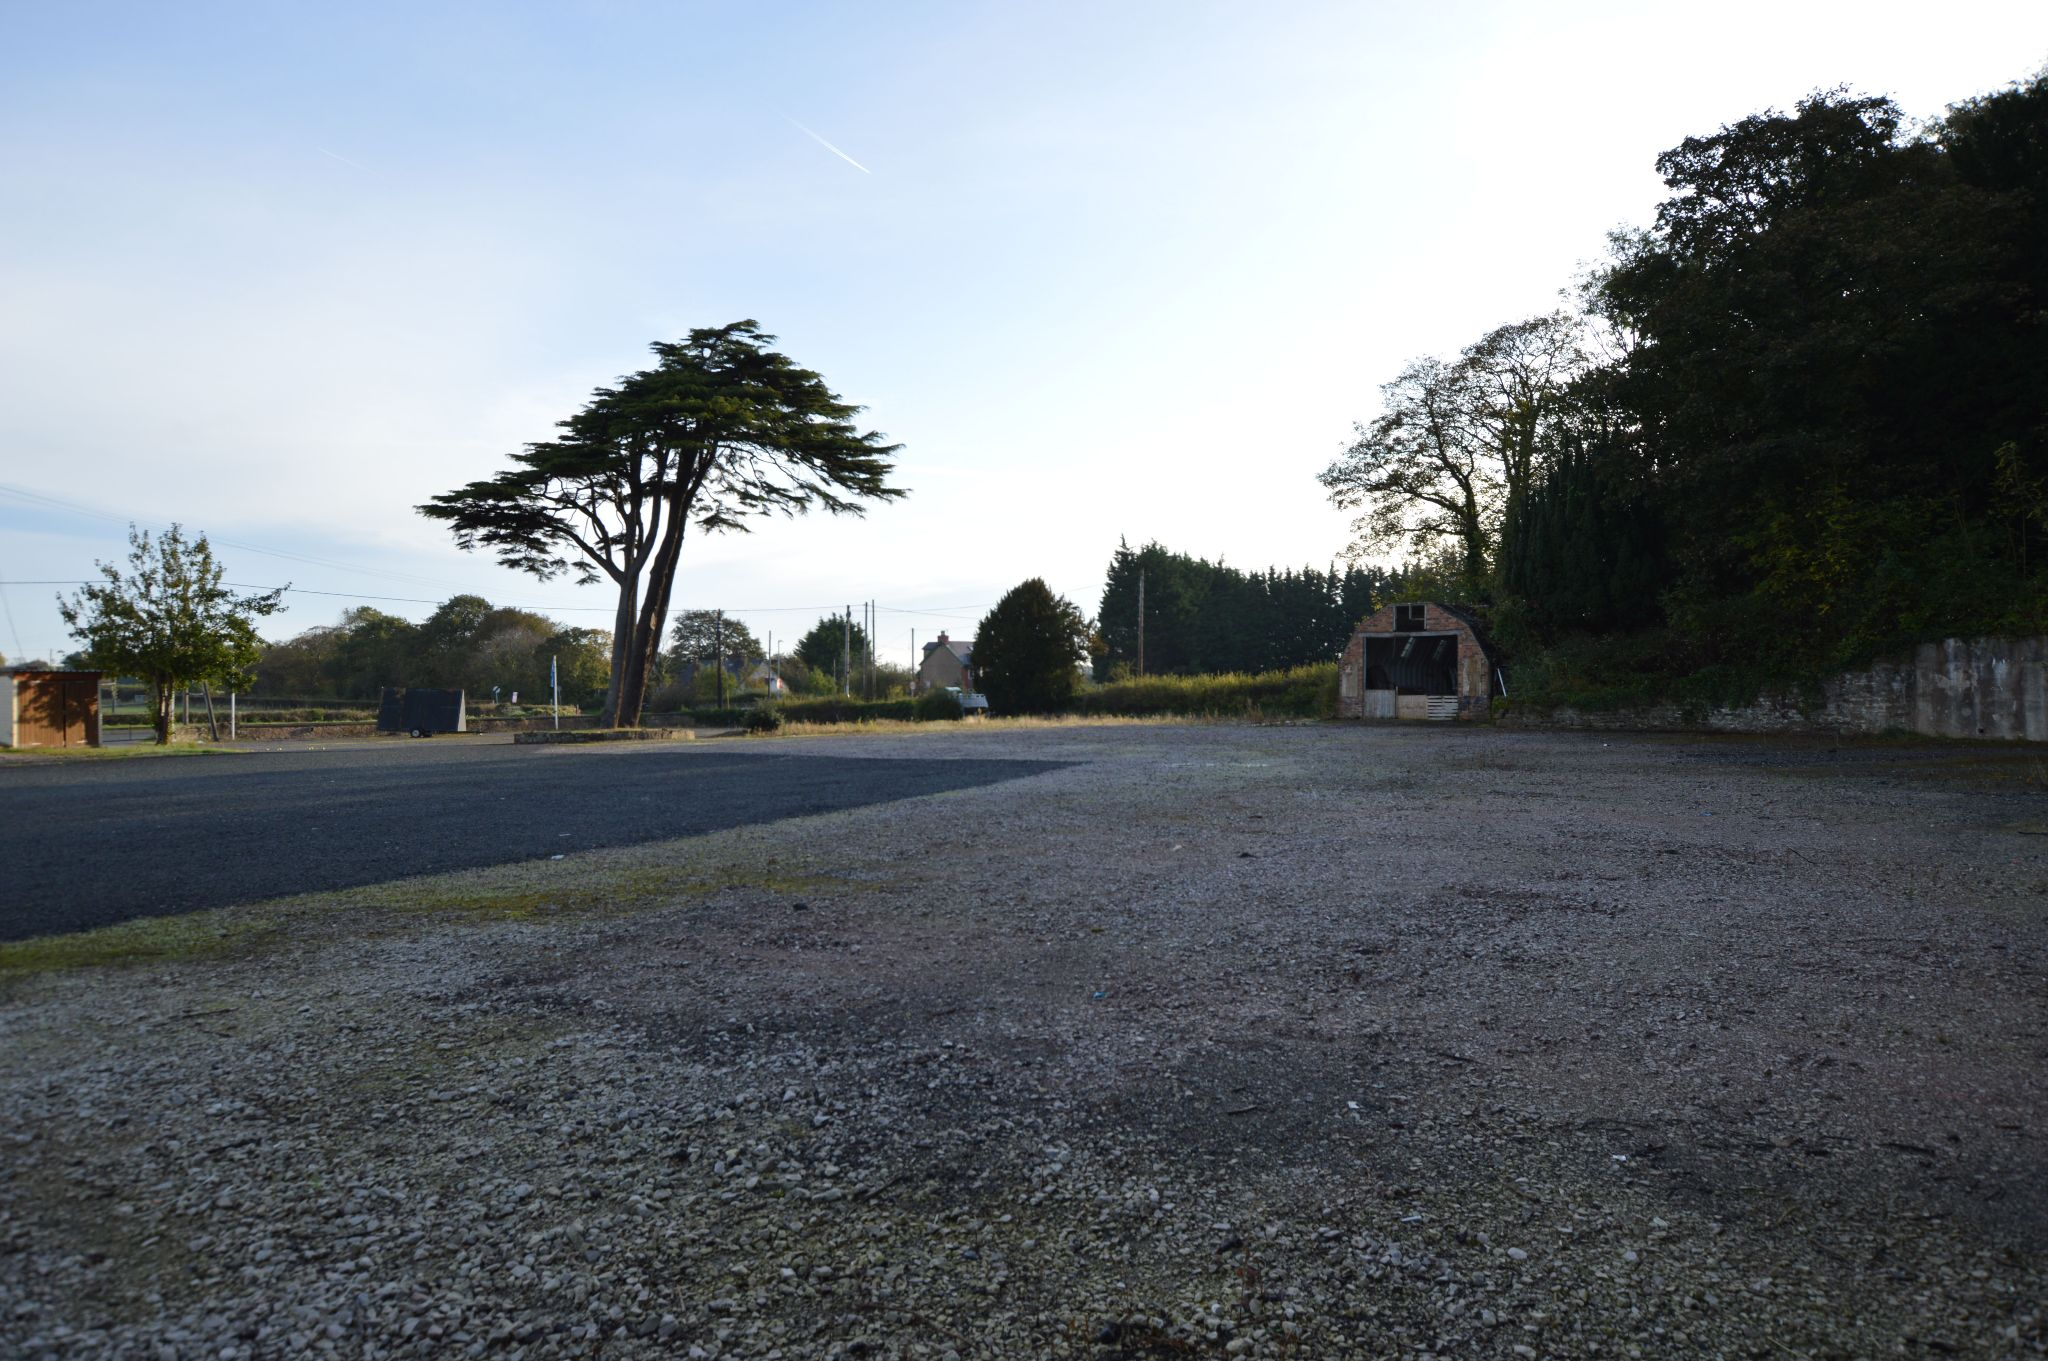 Land For Sale in Holywell - Land View 3